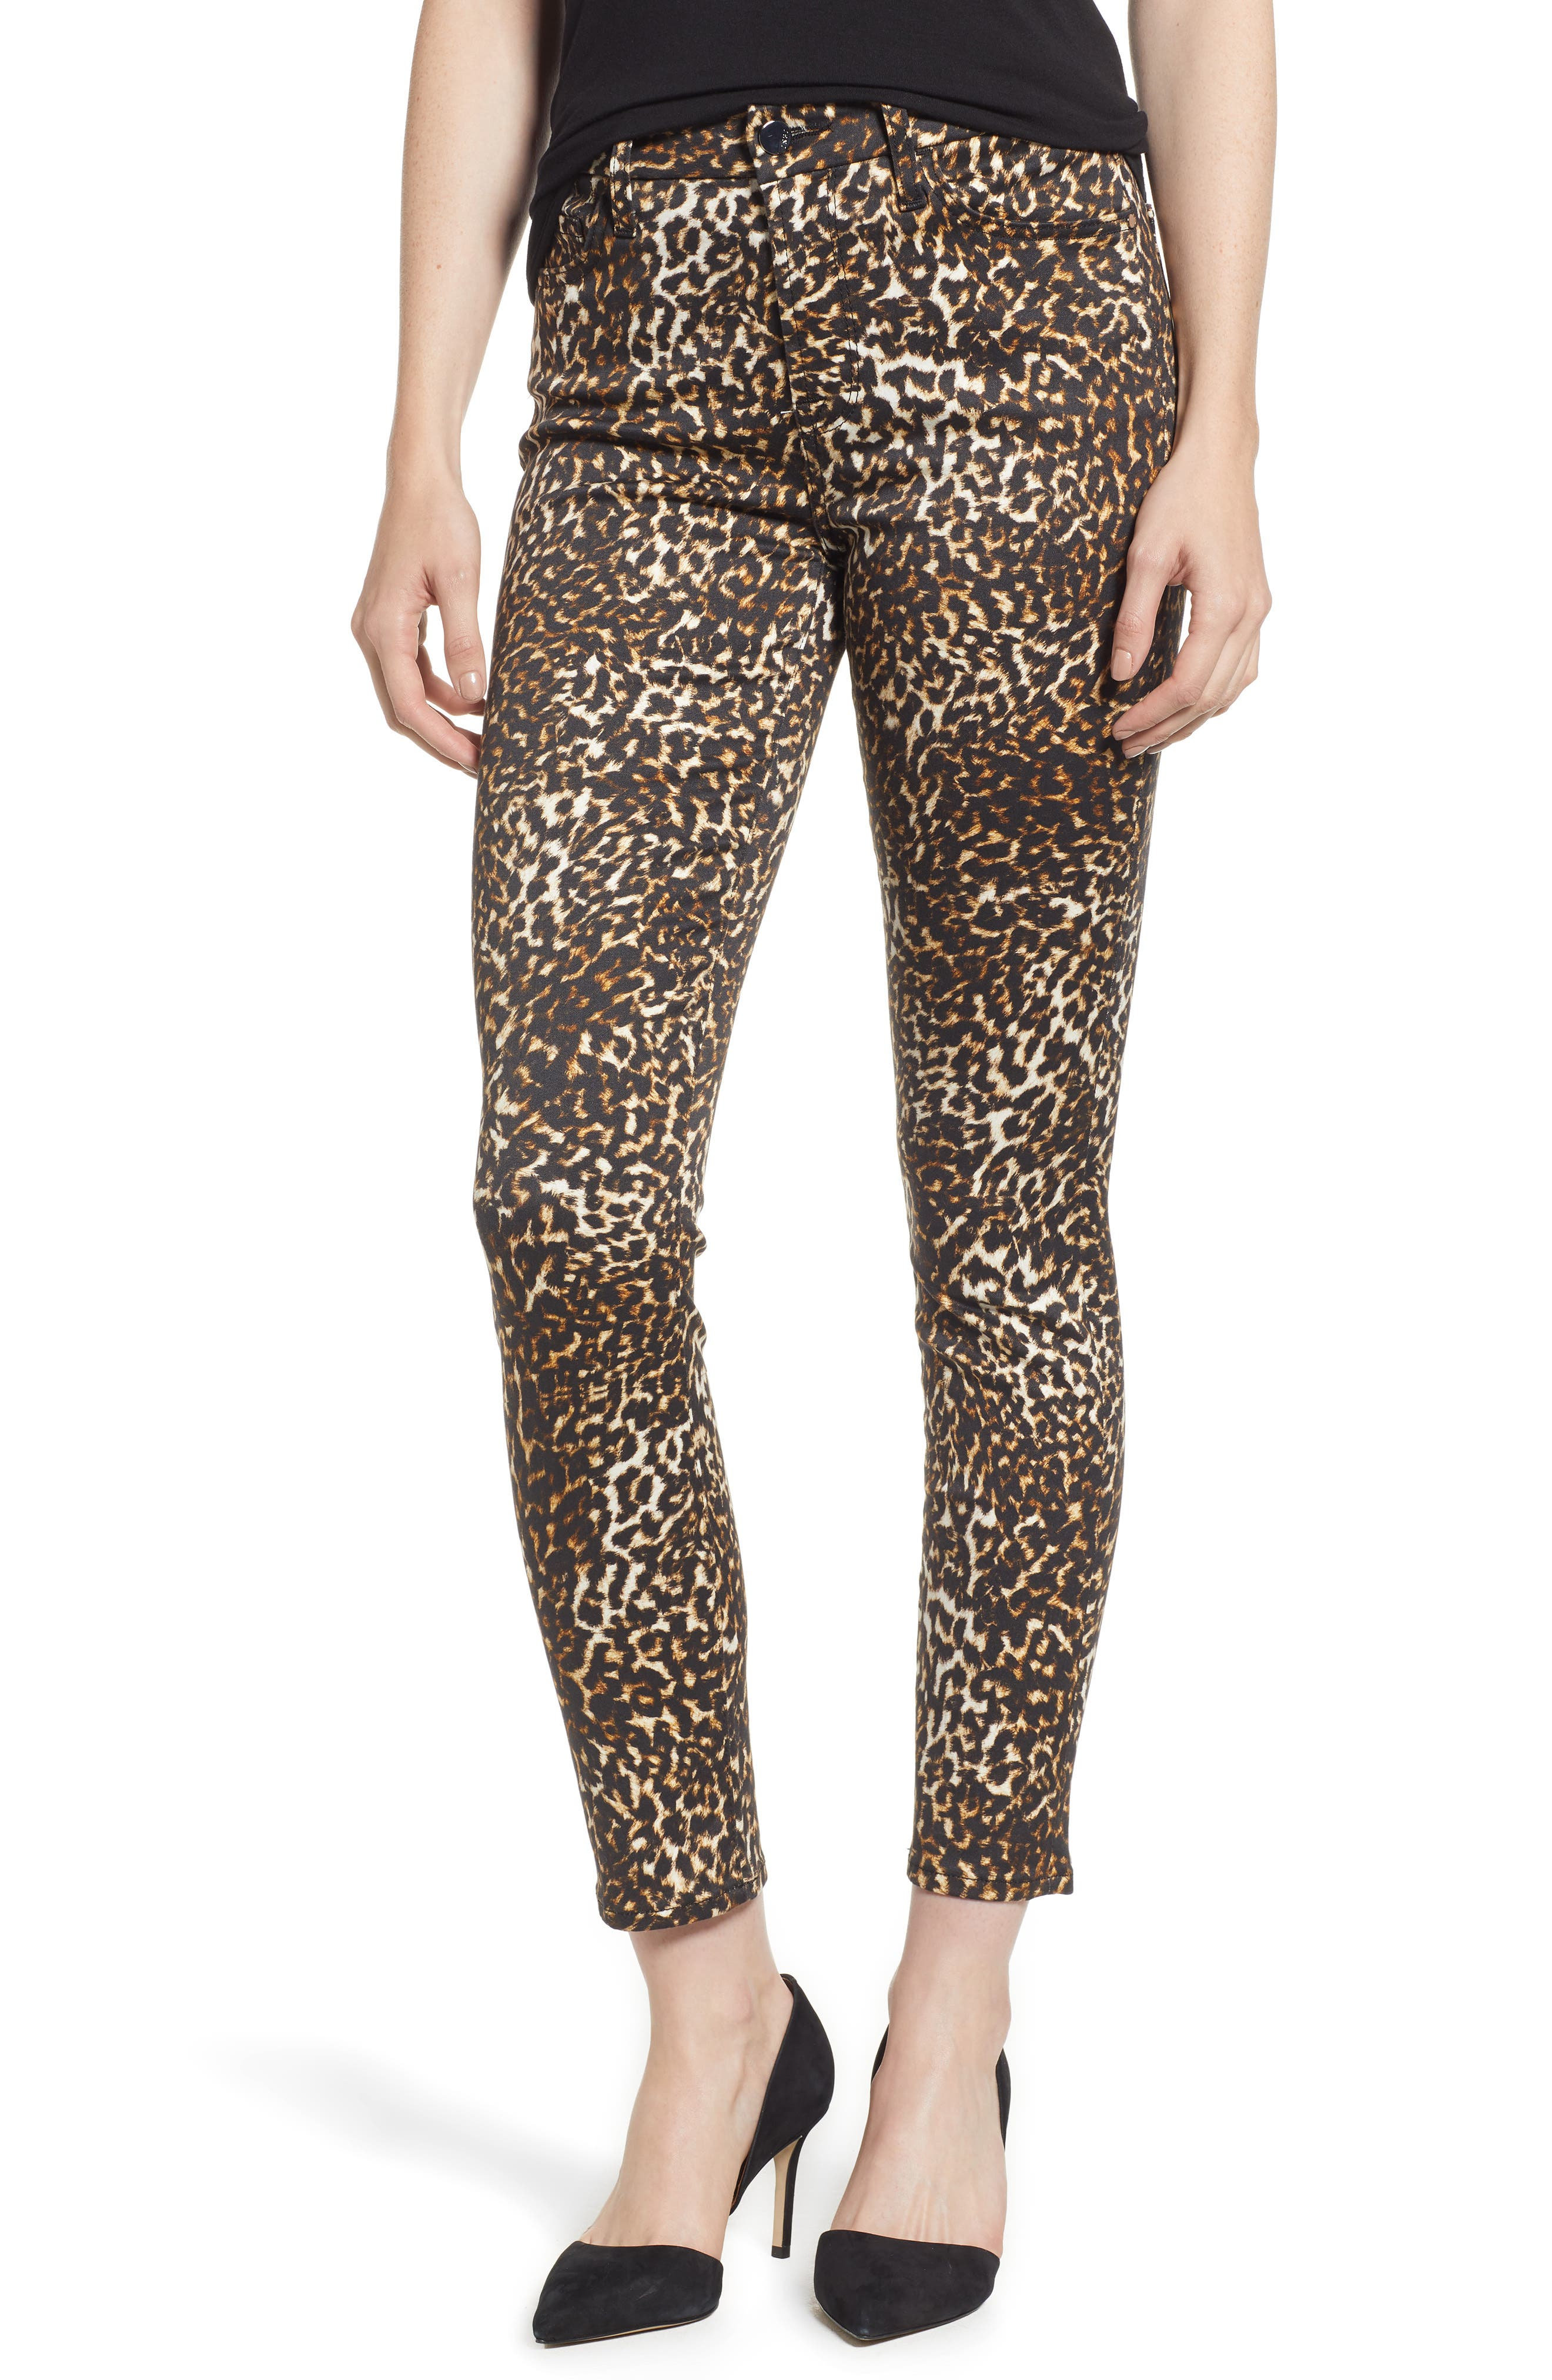 JEN7 BY 7 FOR ALL MANKIND Leopard-Print Skinny Ankle Jeans in Shaded Cheetah